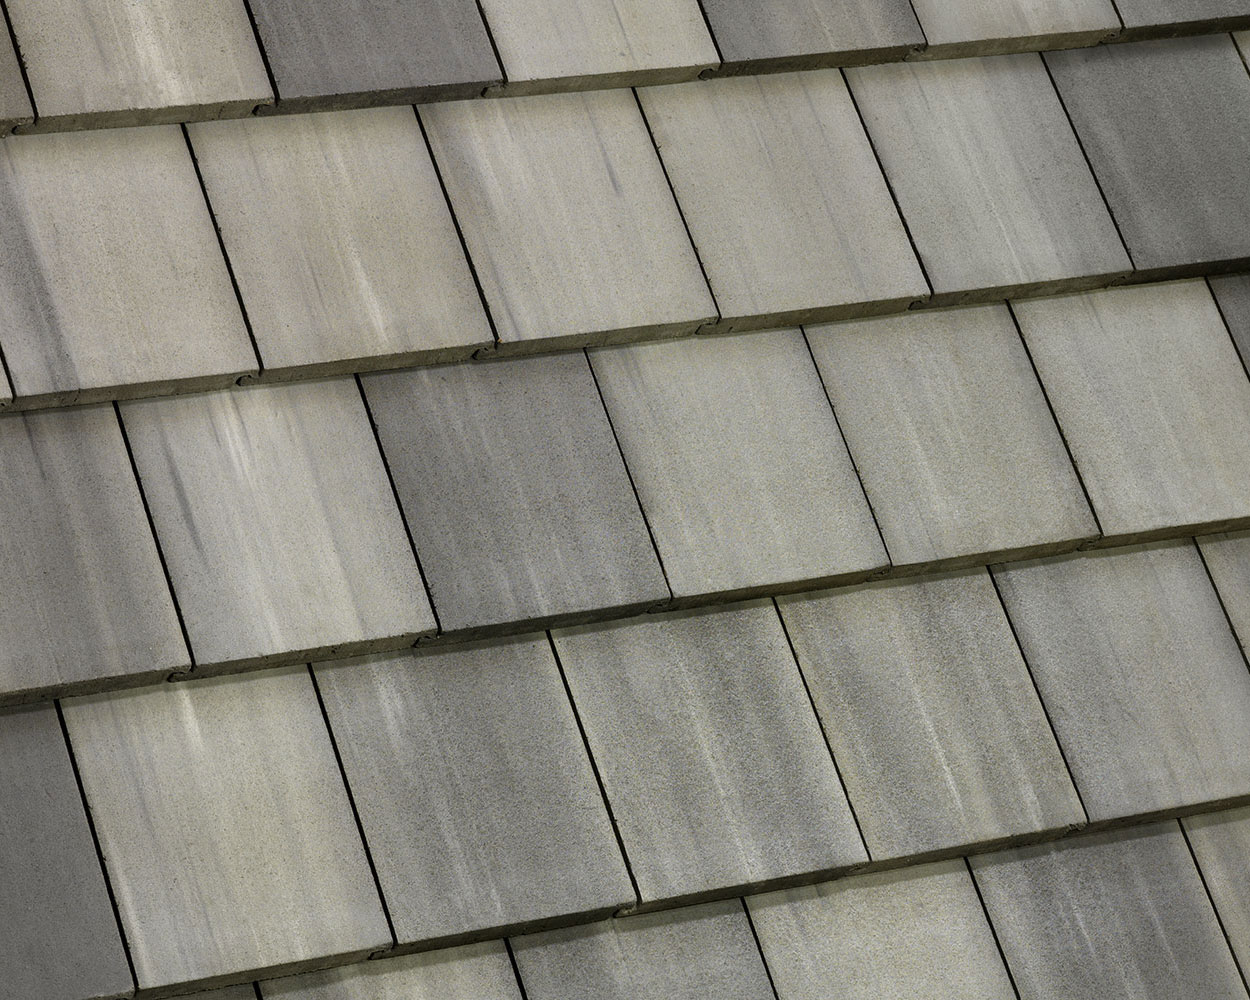 Mount dora blend tile roof color swatch